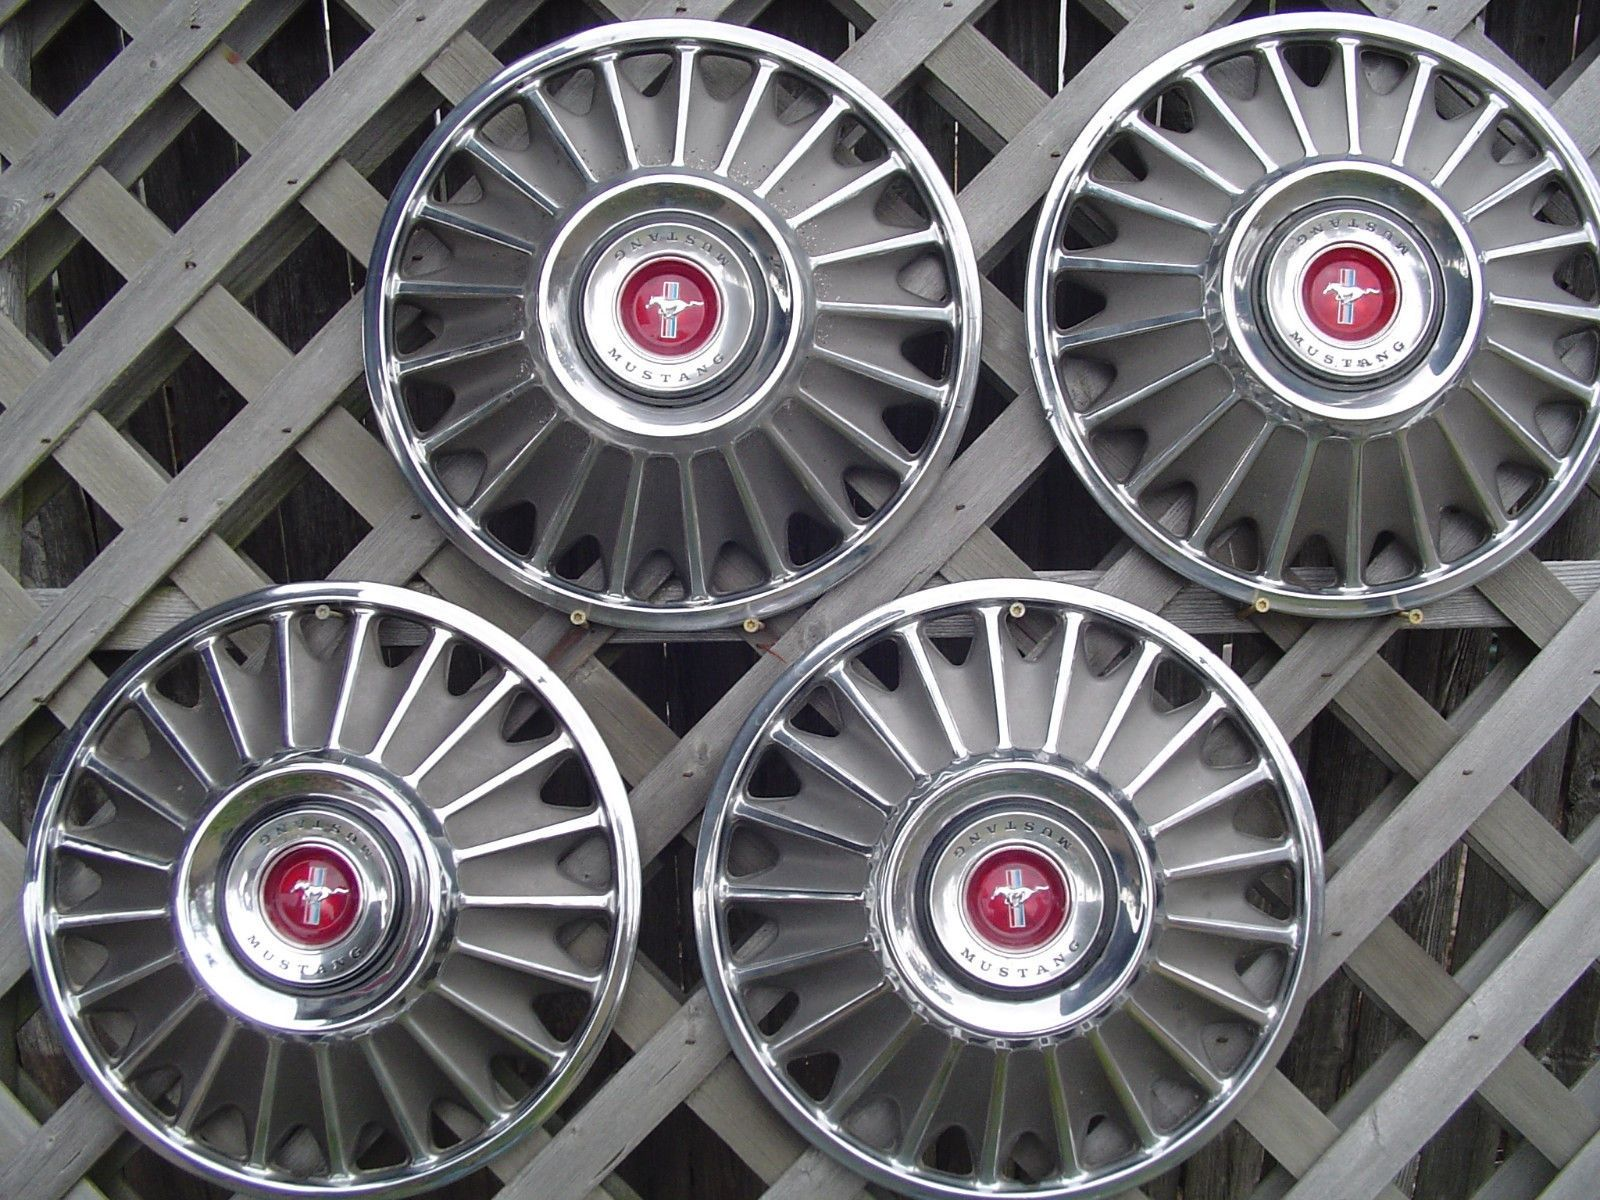 1967 Ford Mustang Original Hubcaps Images Yahoo Image Search